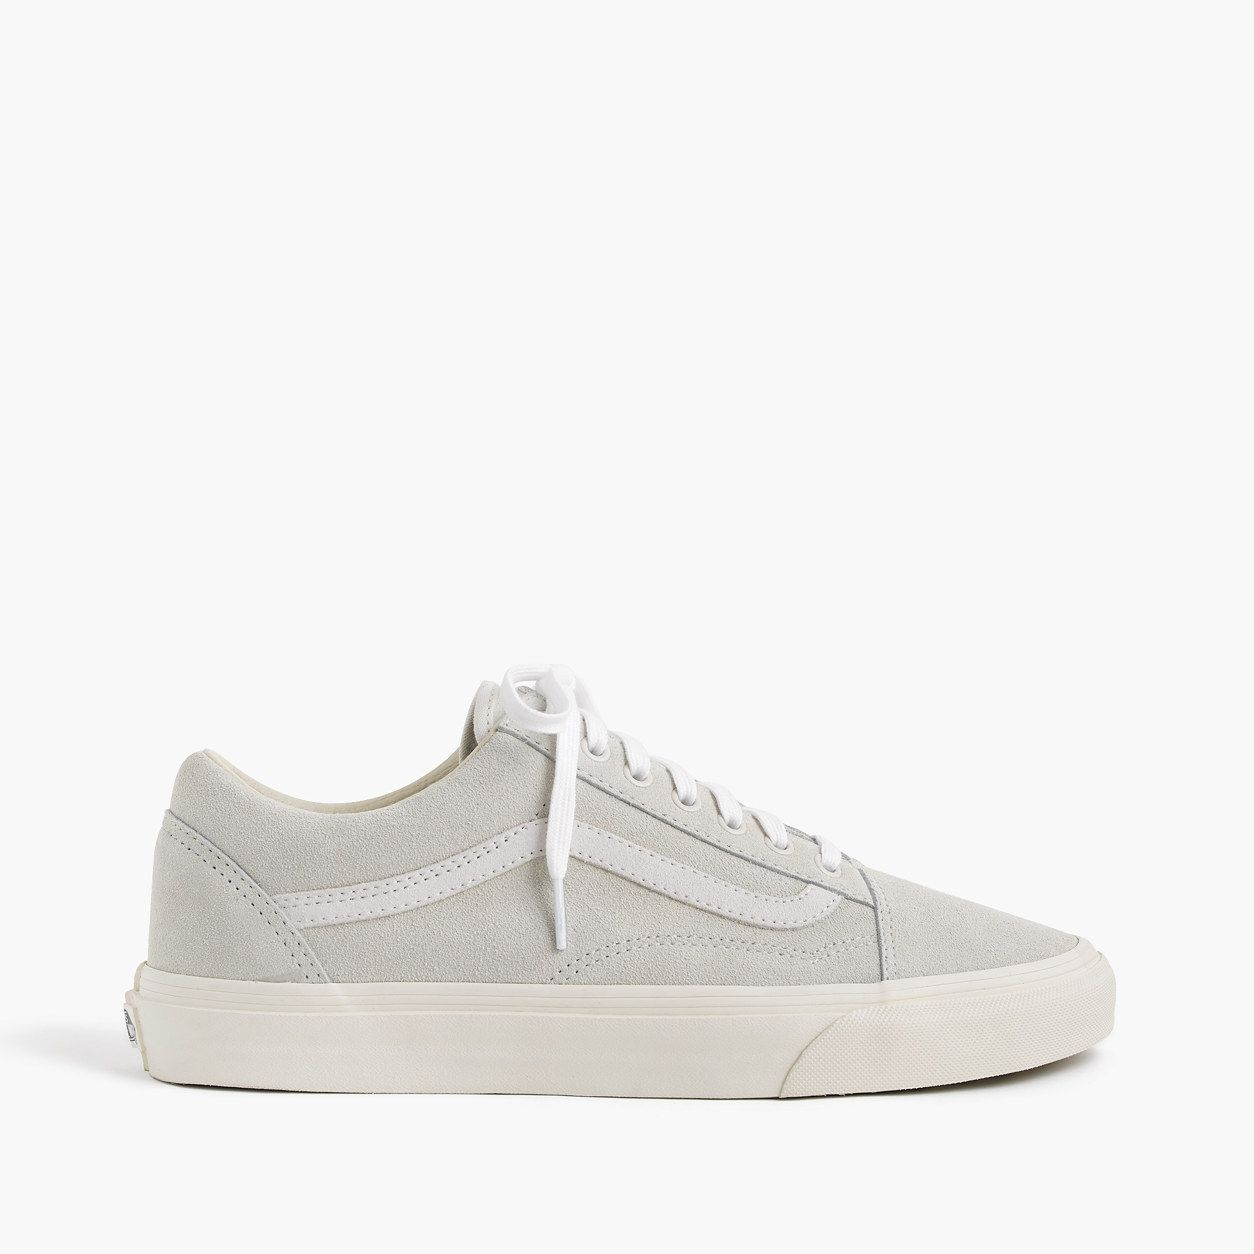 85bb4fd209ae Vans For J.Crew Old Skool Sneakers In Suede (Size 11.5 M)